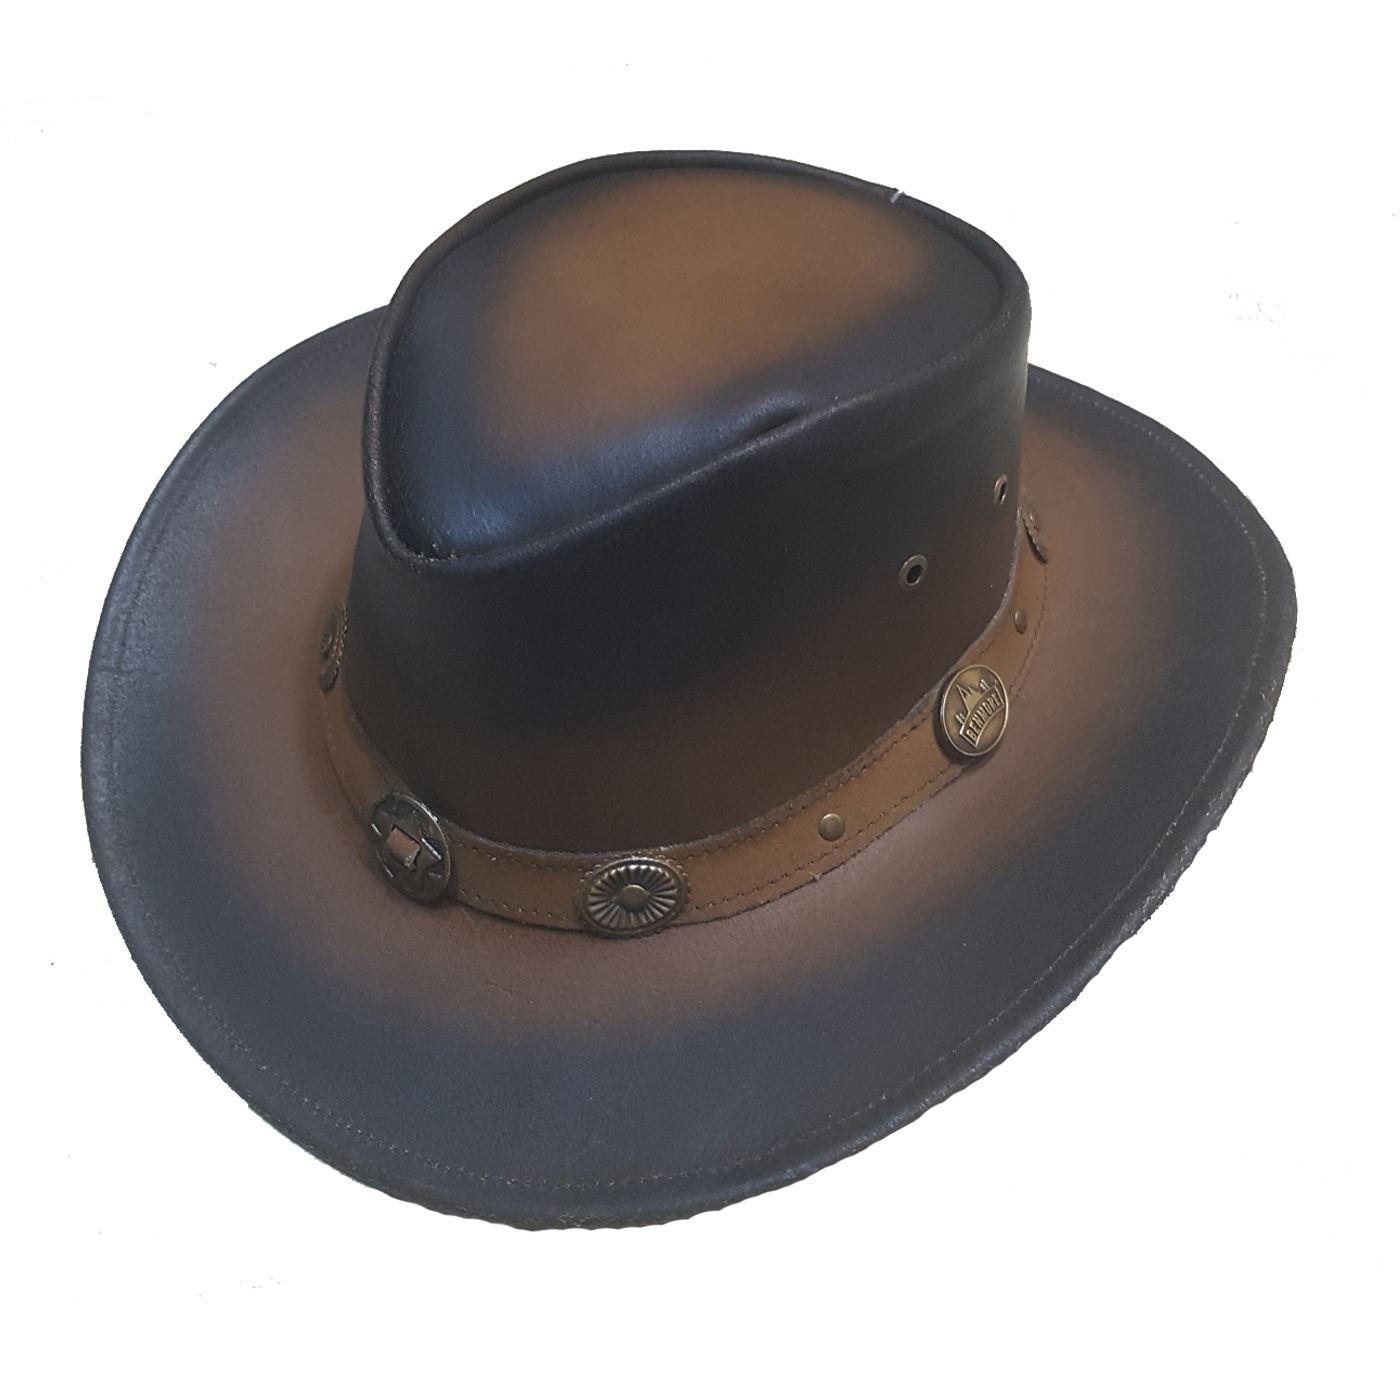 Authentic Benmore Outback Western Style Distressed Cow Leather Aussie Cowboy  Hat 881598540d6